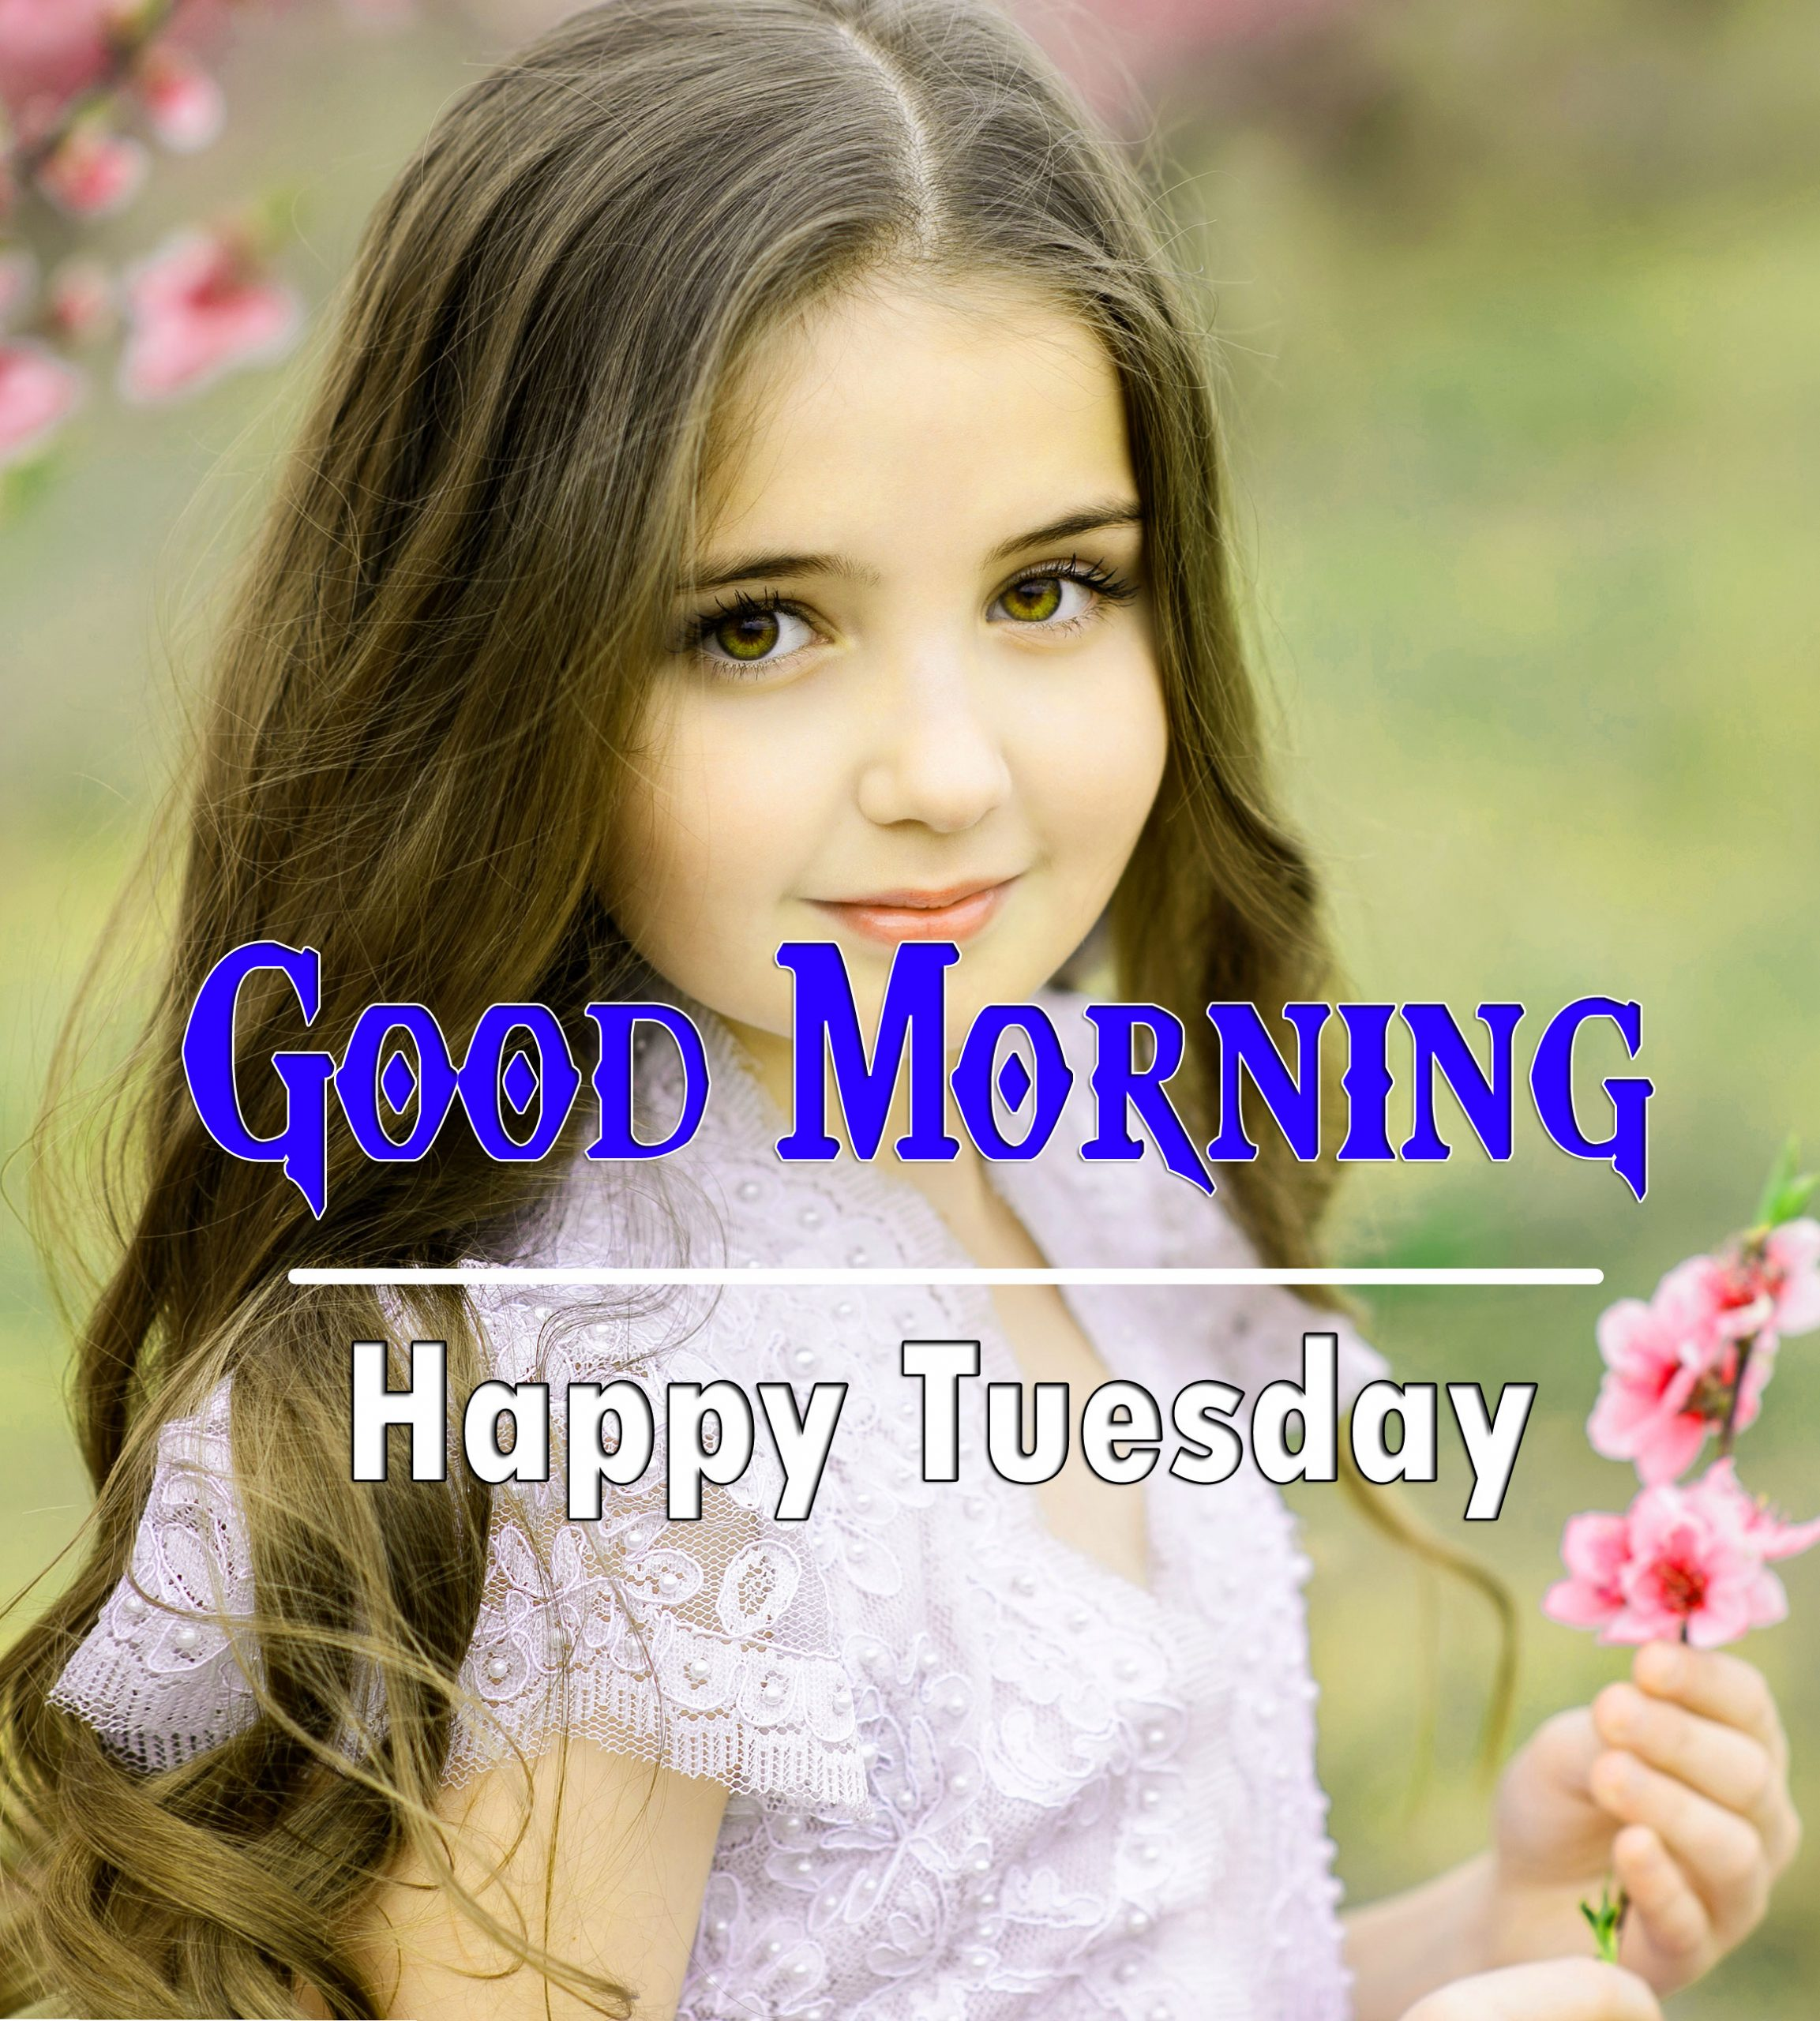 Best HD Tuesday Good morning Images 1